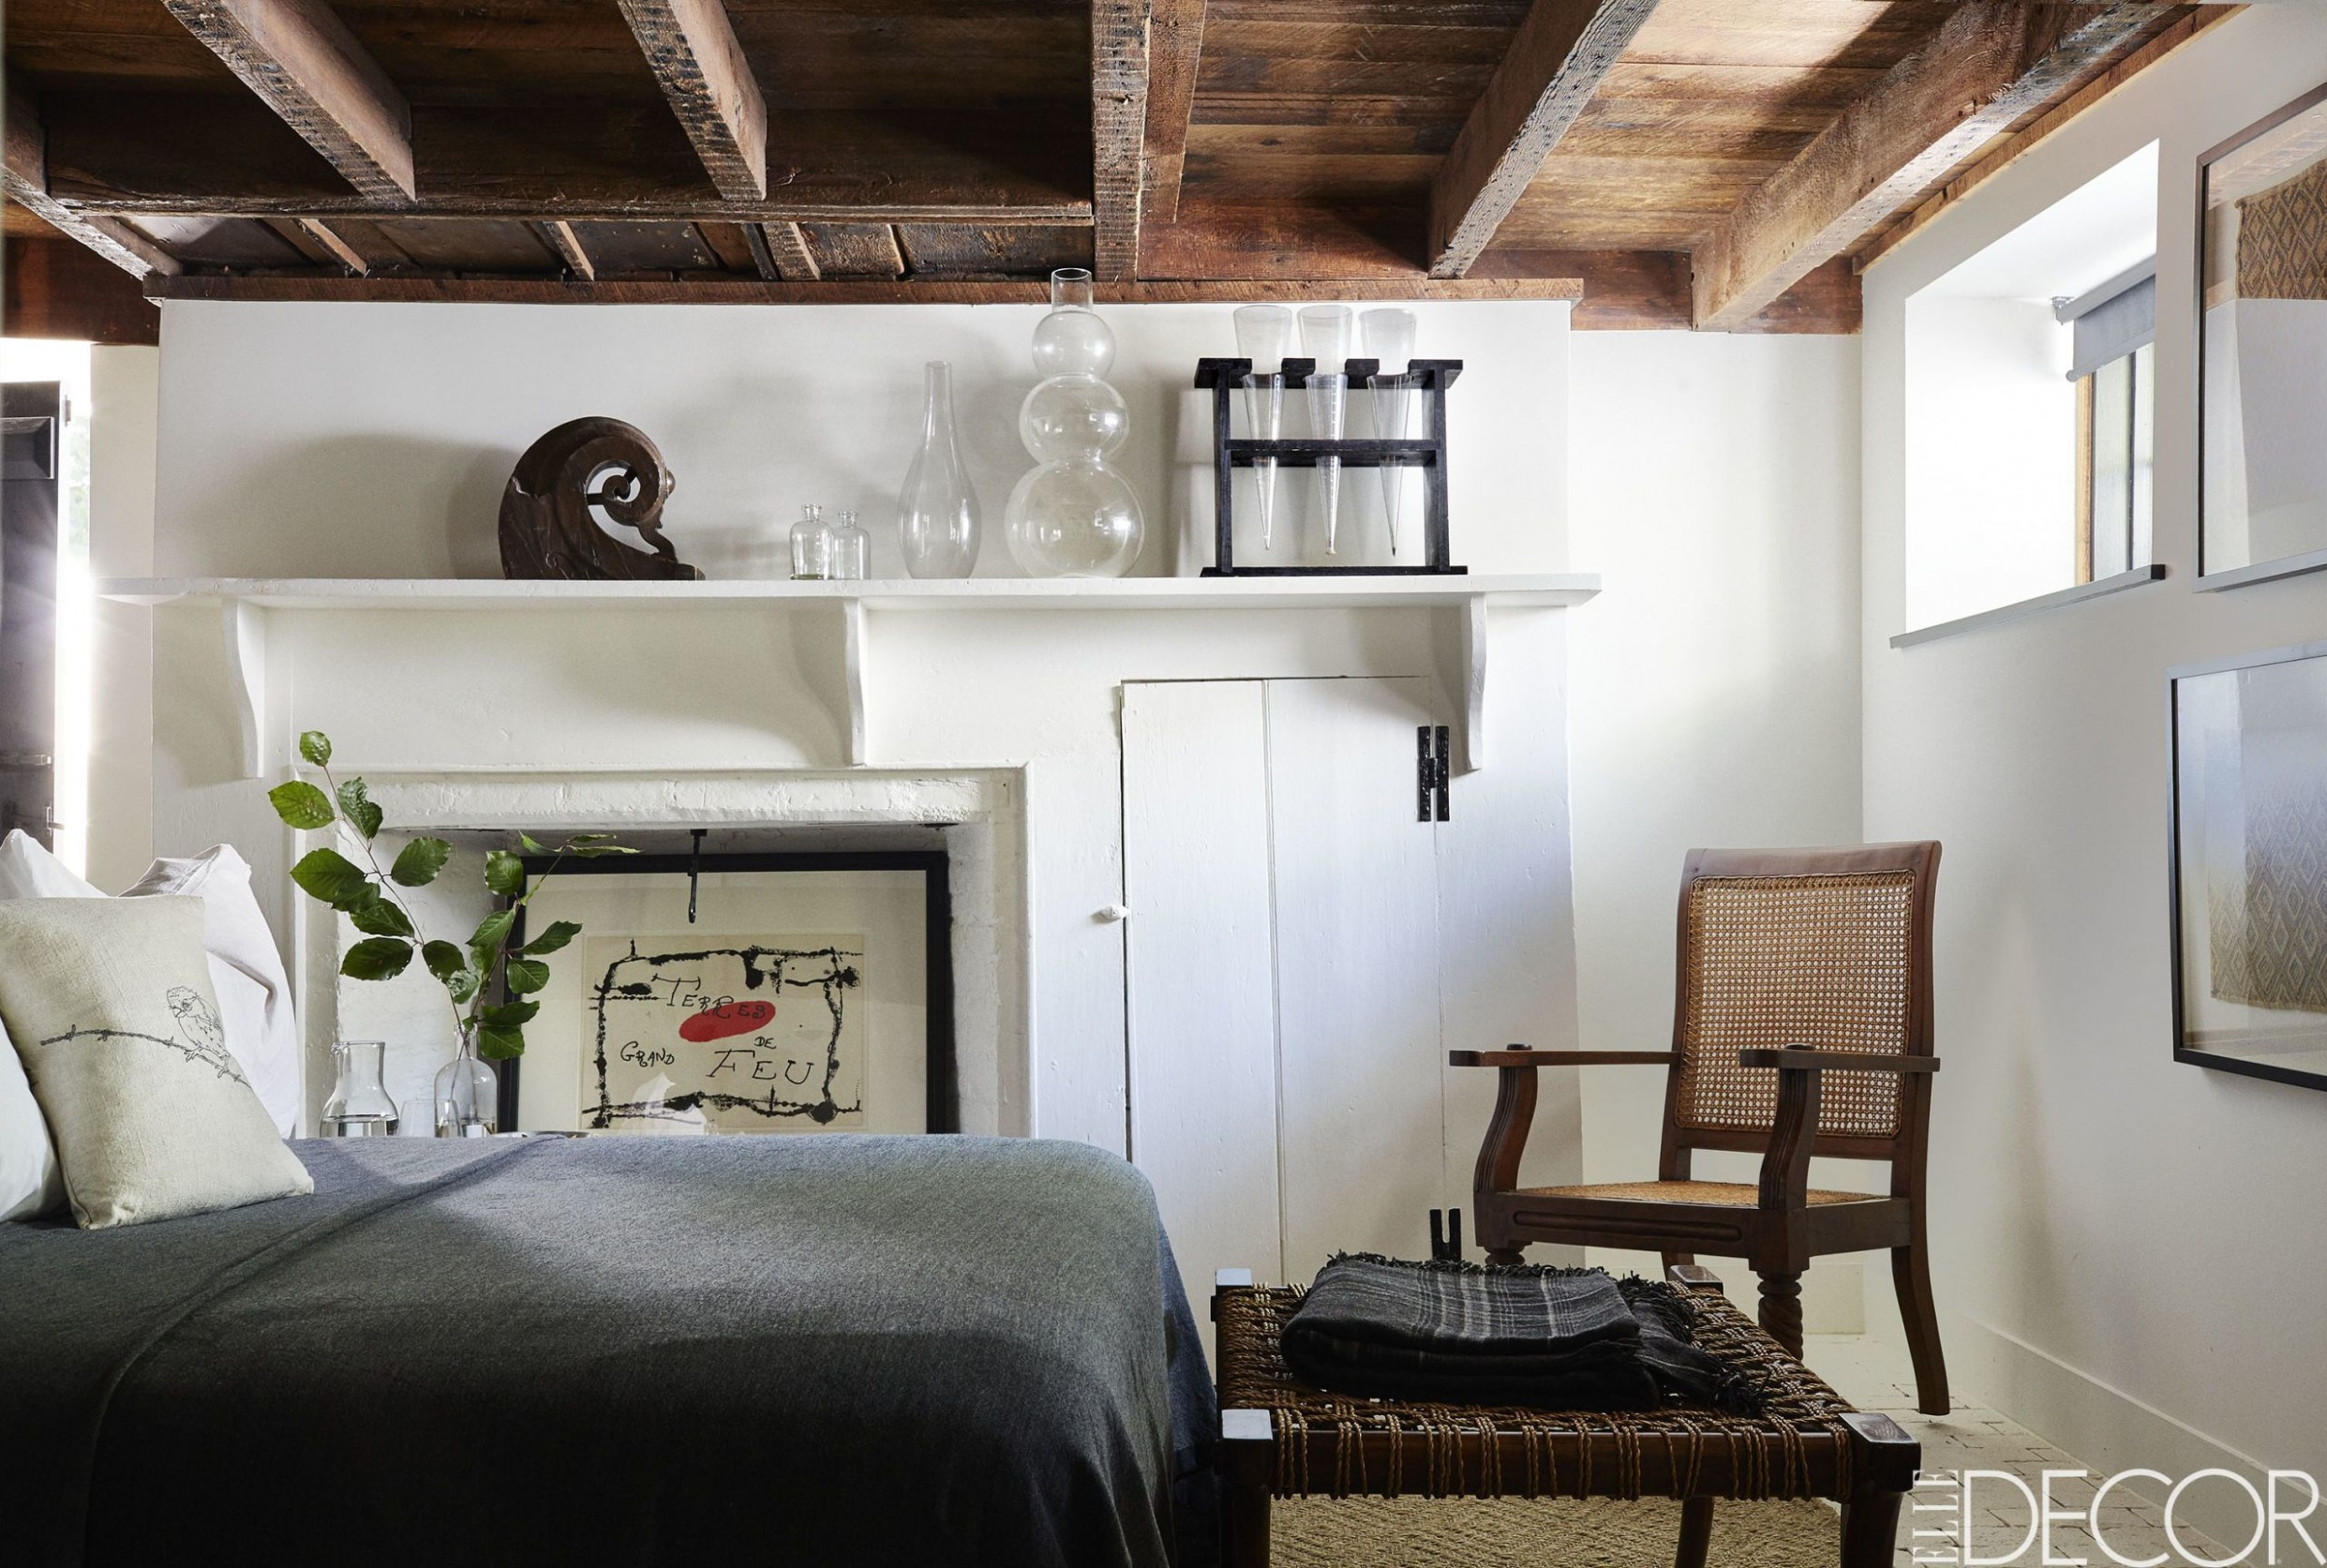 9 Small Bedroom Design Ideas - Decorating Tips for Small Bedrooms - 10X10 Bedroom Ideas